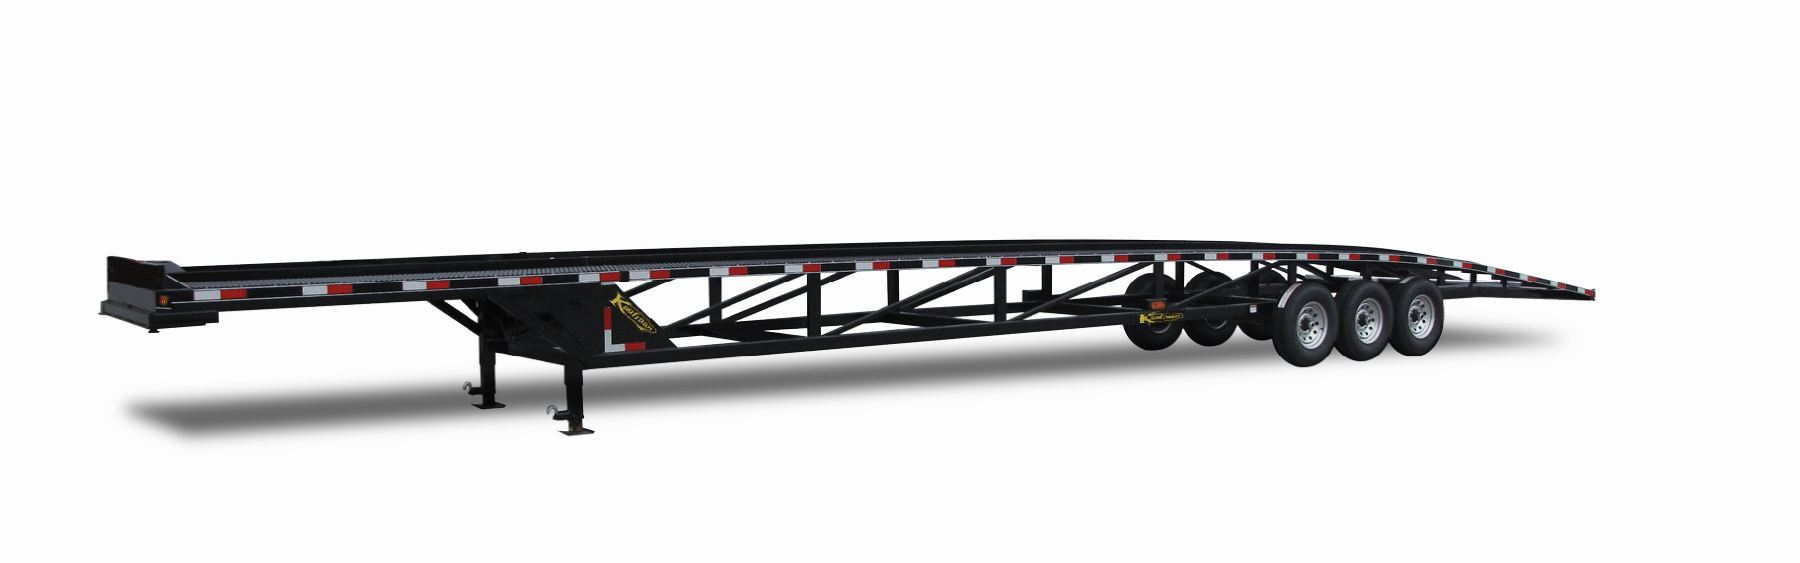 Lo-Pro-Tri-Axle-Cut-Out